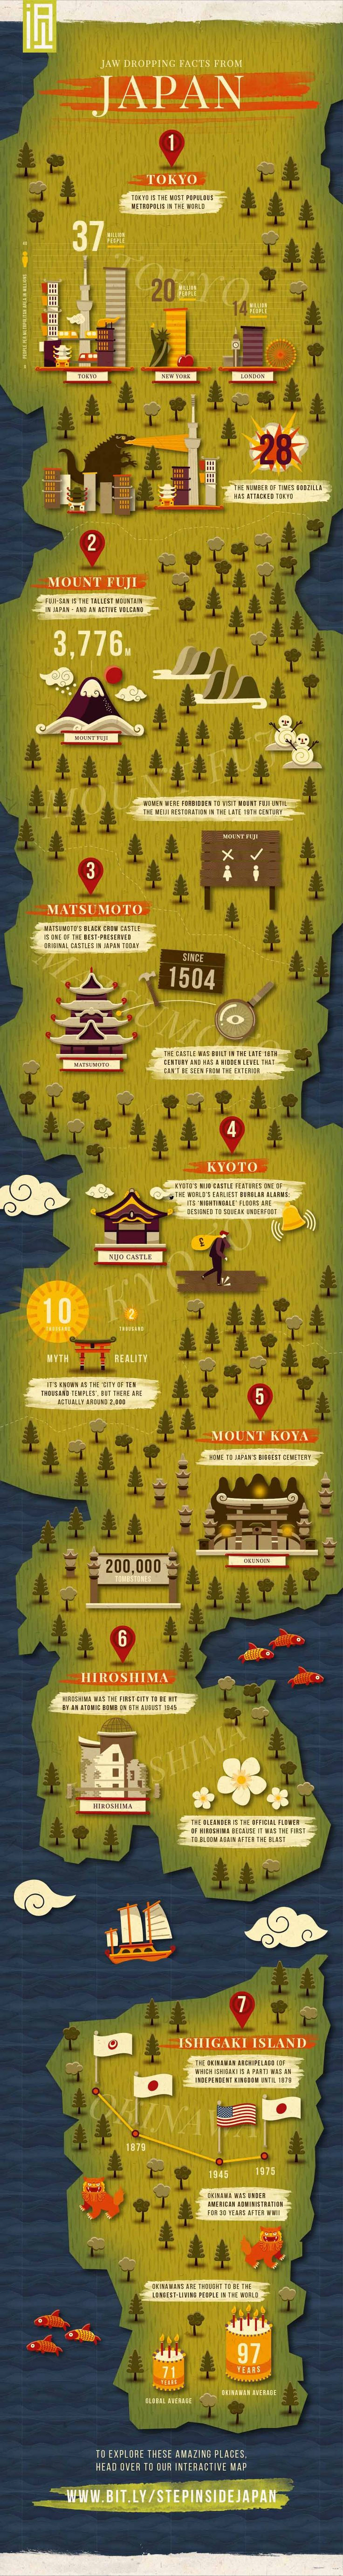 Check out these amazing facts about Japan. And when you click on the interactive map, you'll see 360° Google photo views of iconic spots across the country!